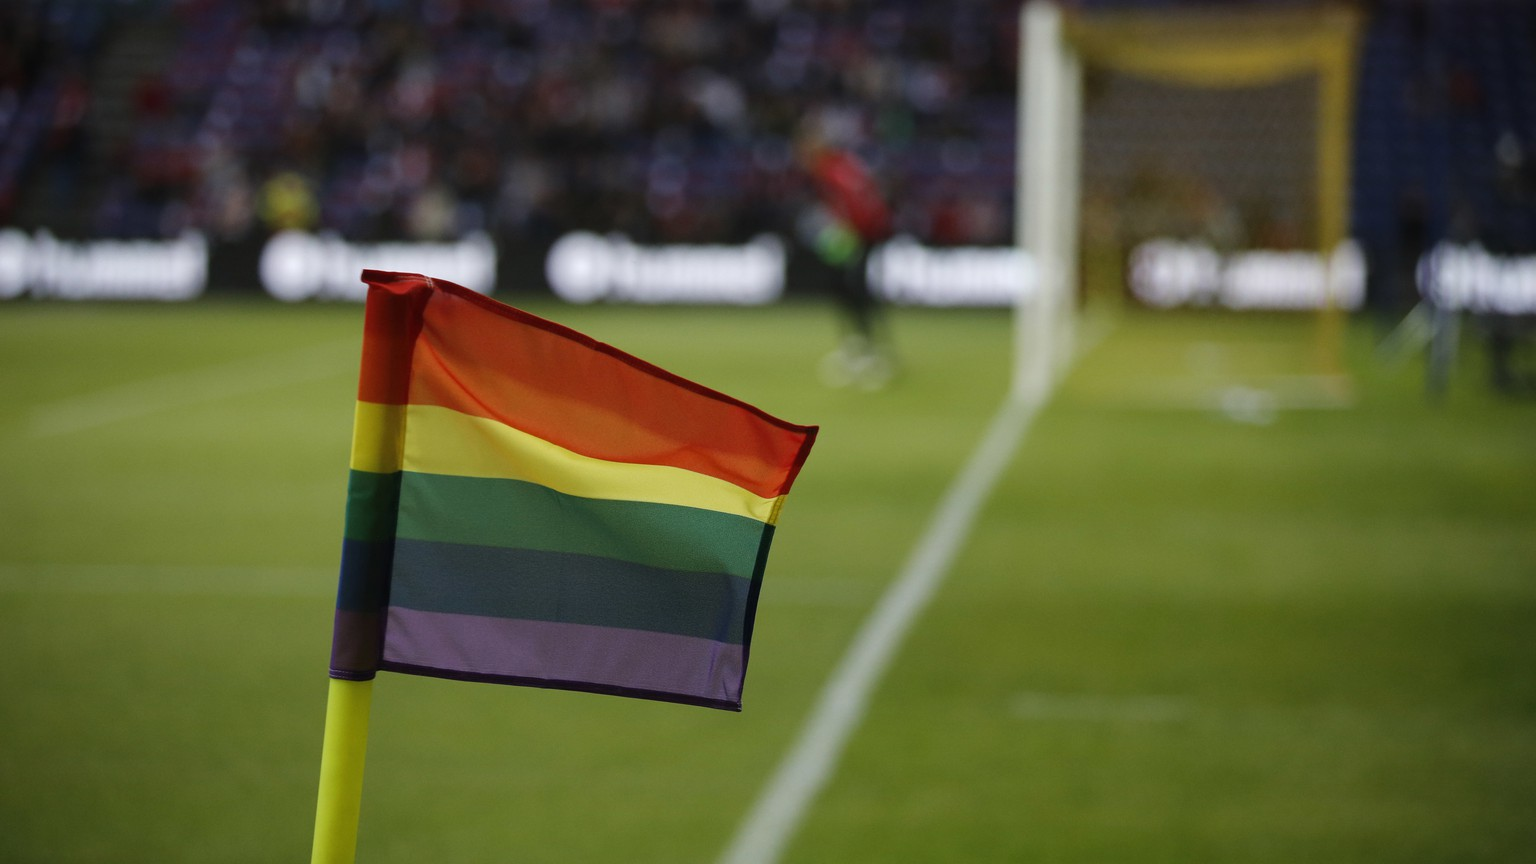 Rainbow flags hang from the corner post before the international friendly soccer match between Denmark and Germany at Brondby Stadion, Copenhagen, Tuesday, June 6, 2017. The Danish Football Association actively seeks to dissociate itself from any sexual bigotry in the sport. (Jens Dresling/Ritzau Foto via AP)